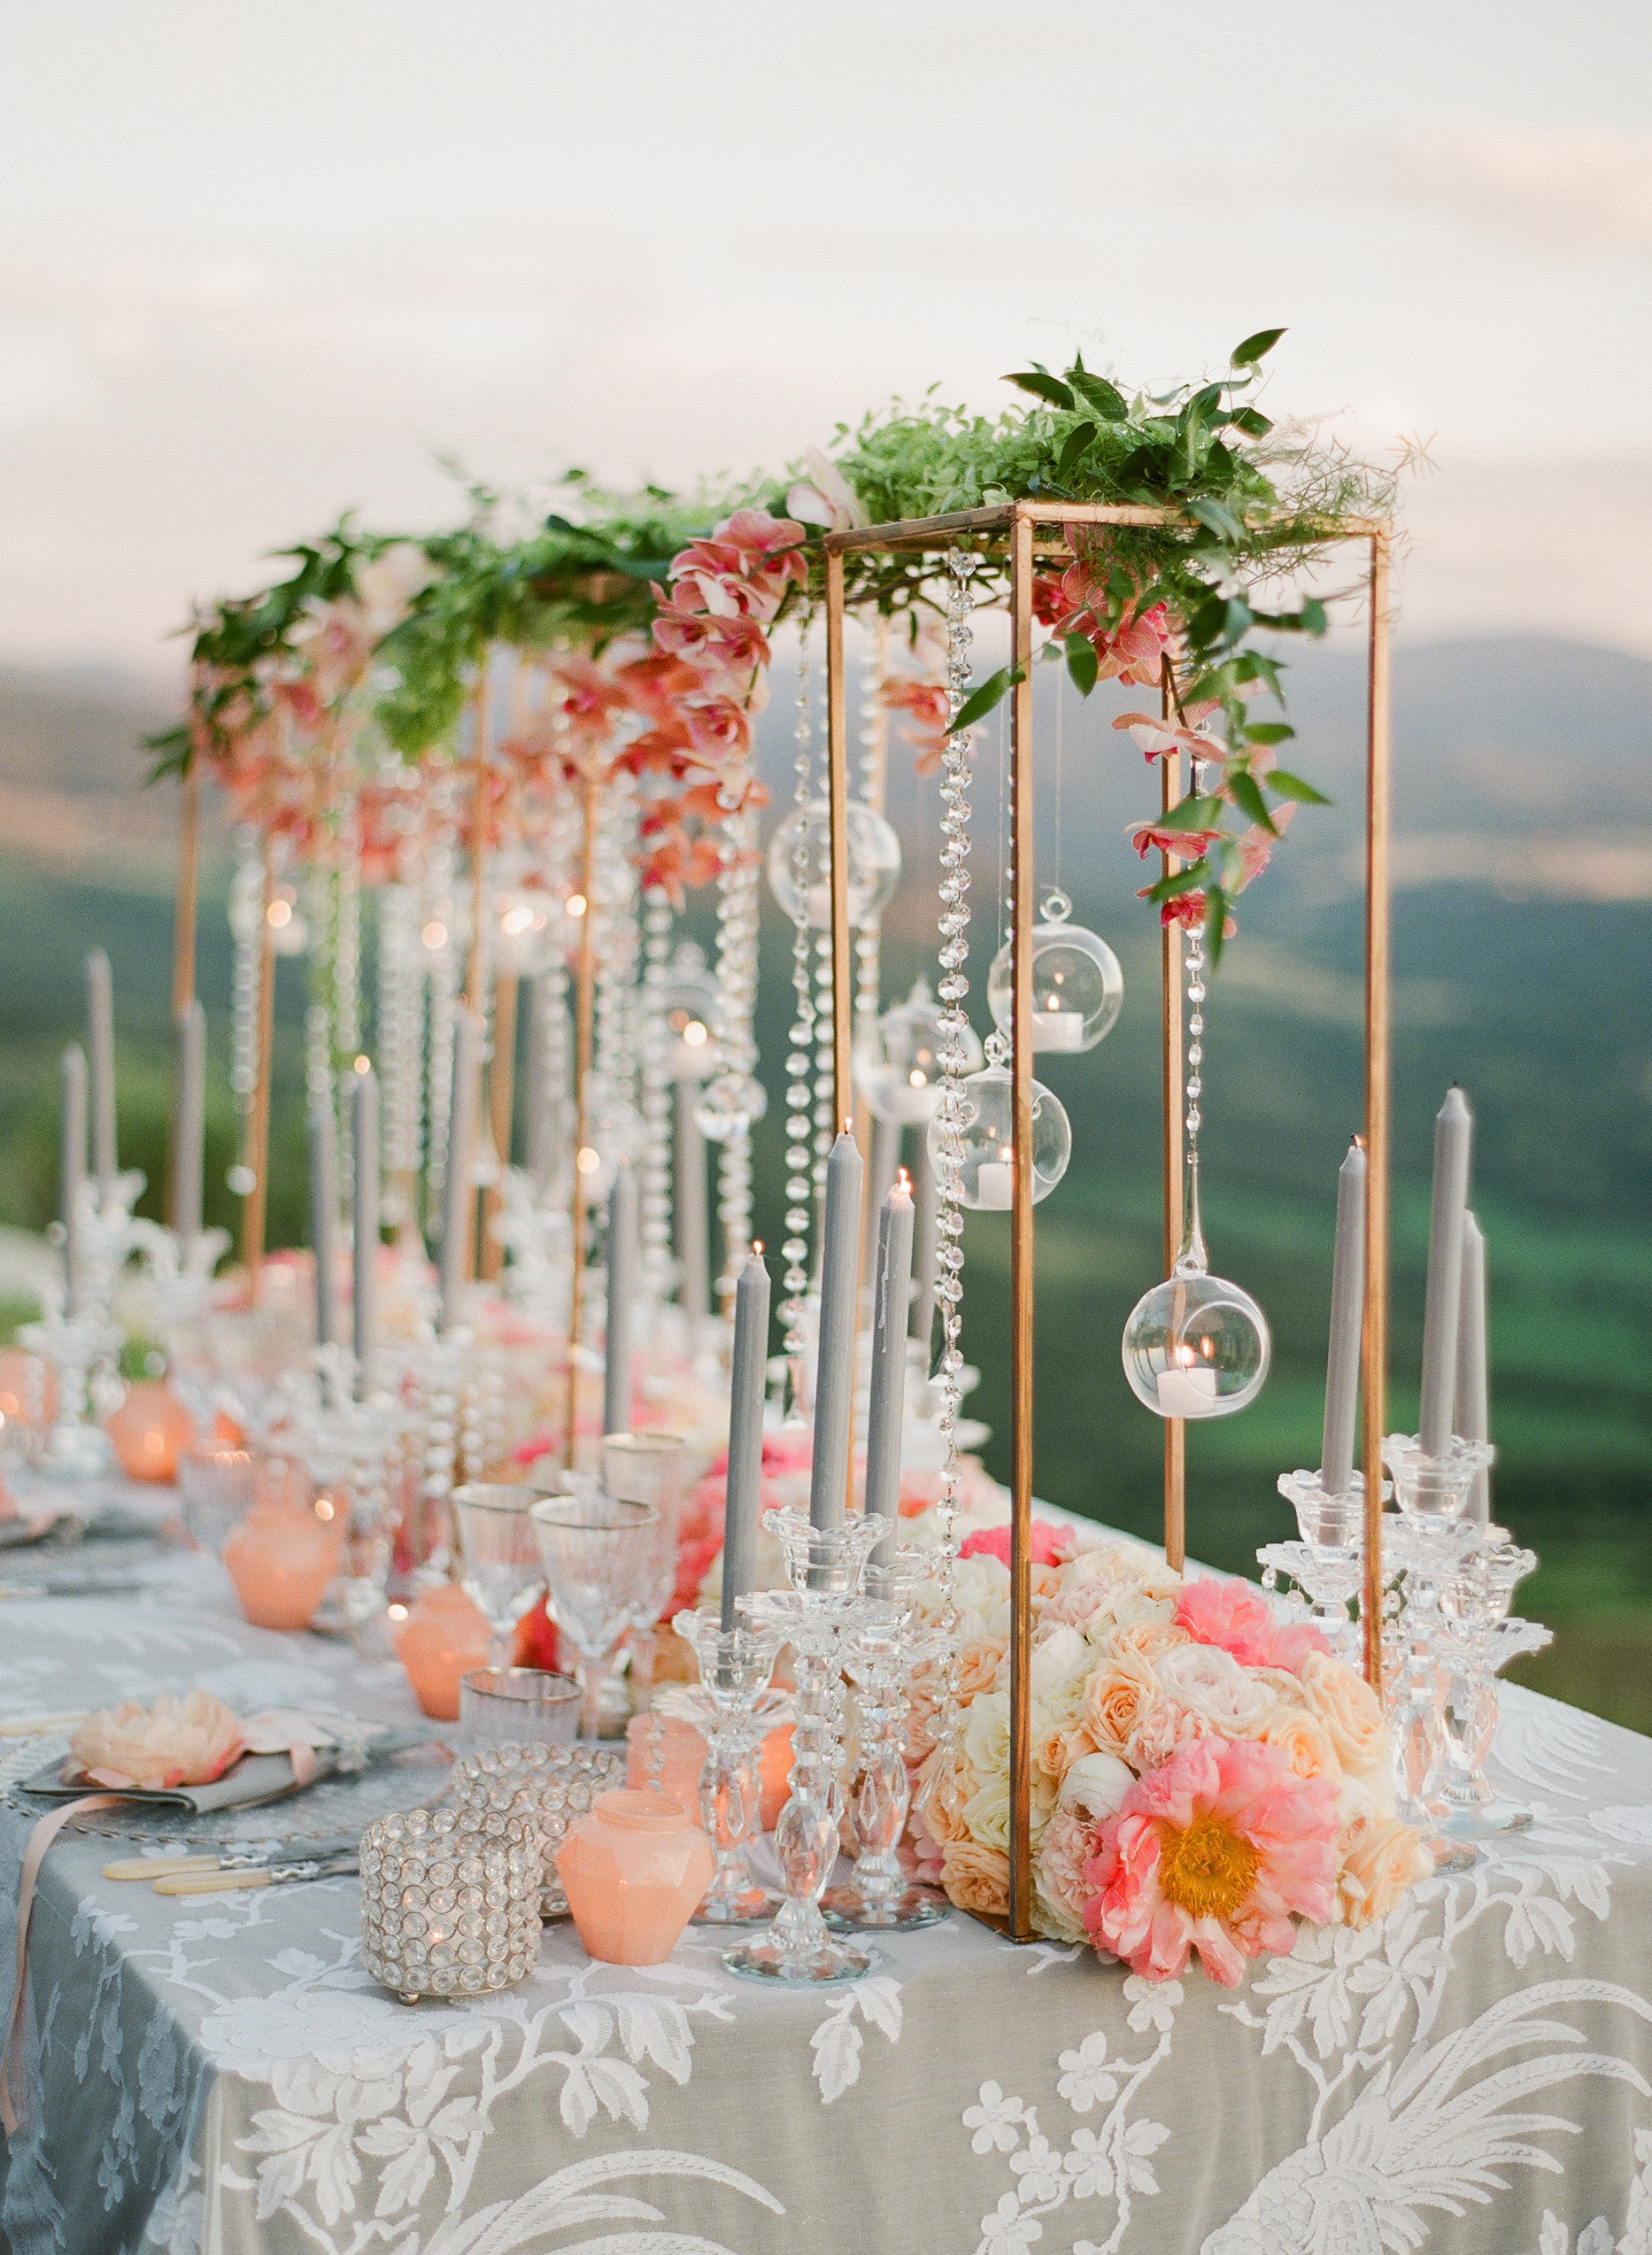 tall centerpiece with pink garden roses and ornaments